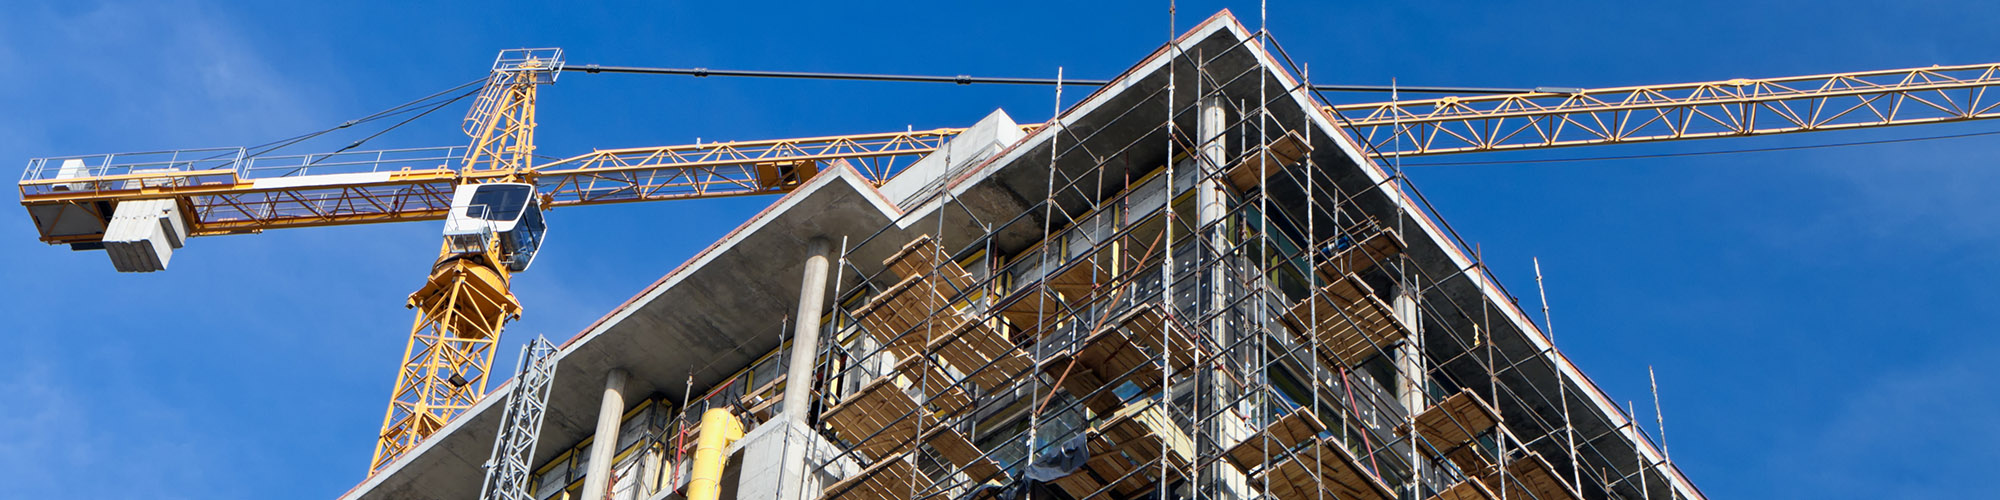 Construction Management Services in Irvine, CA